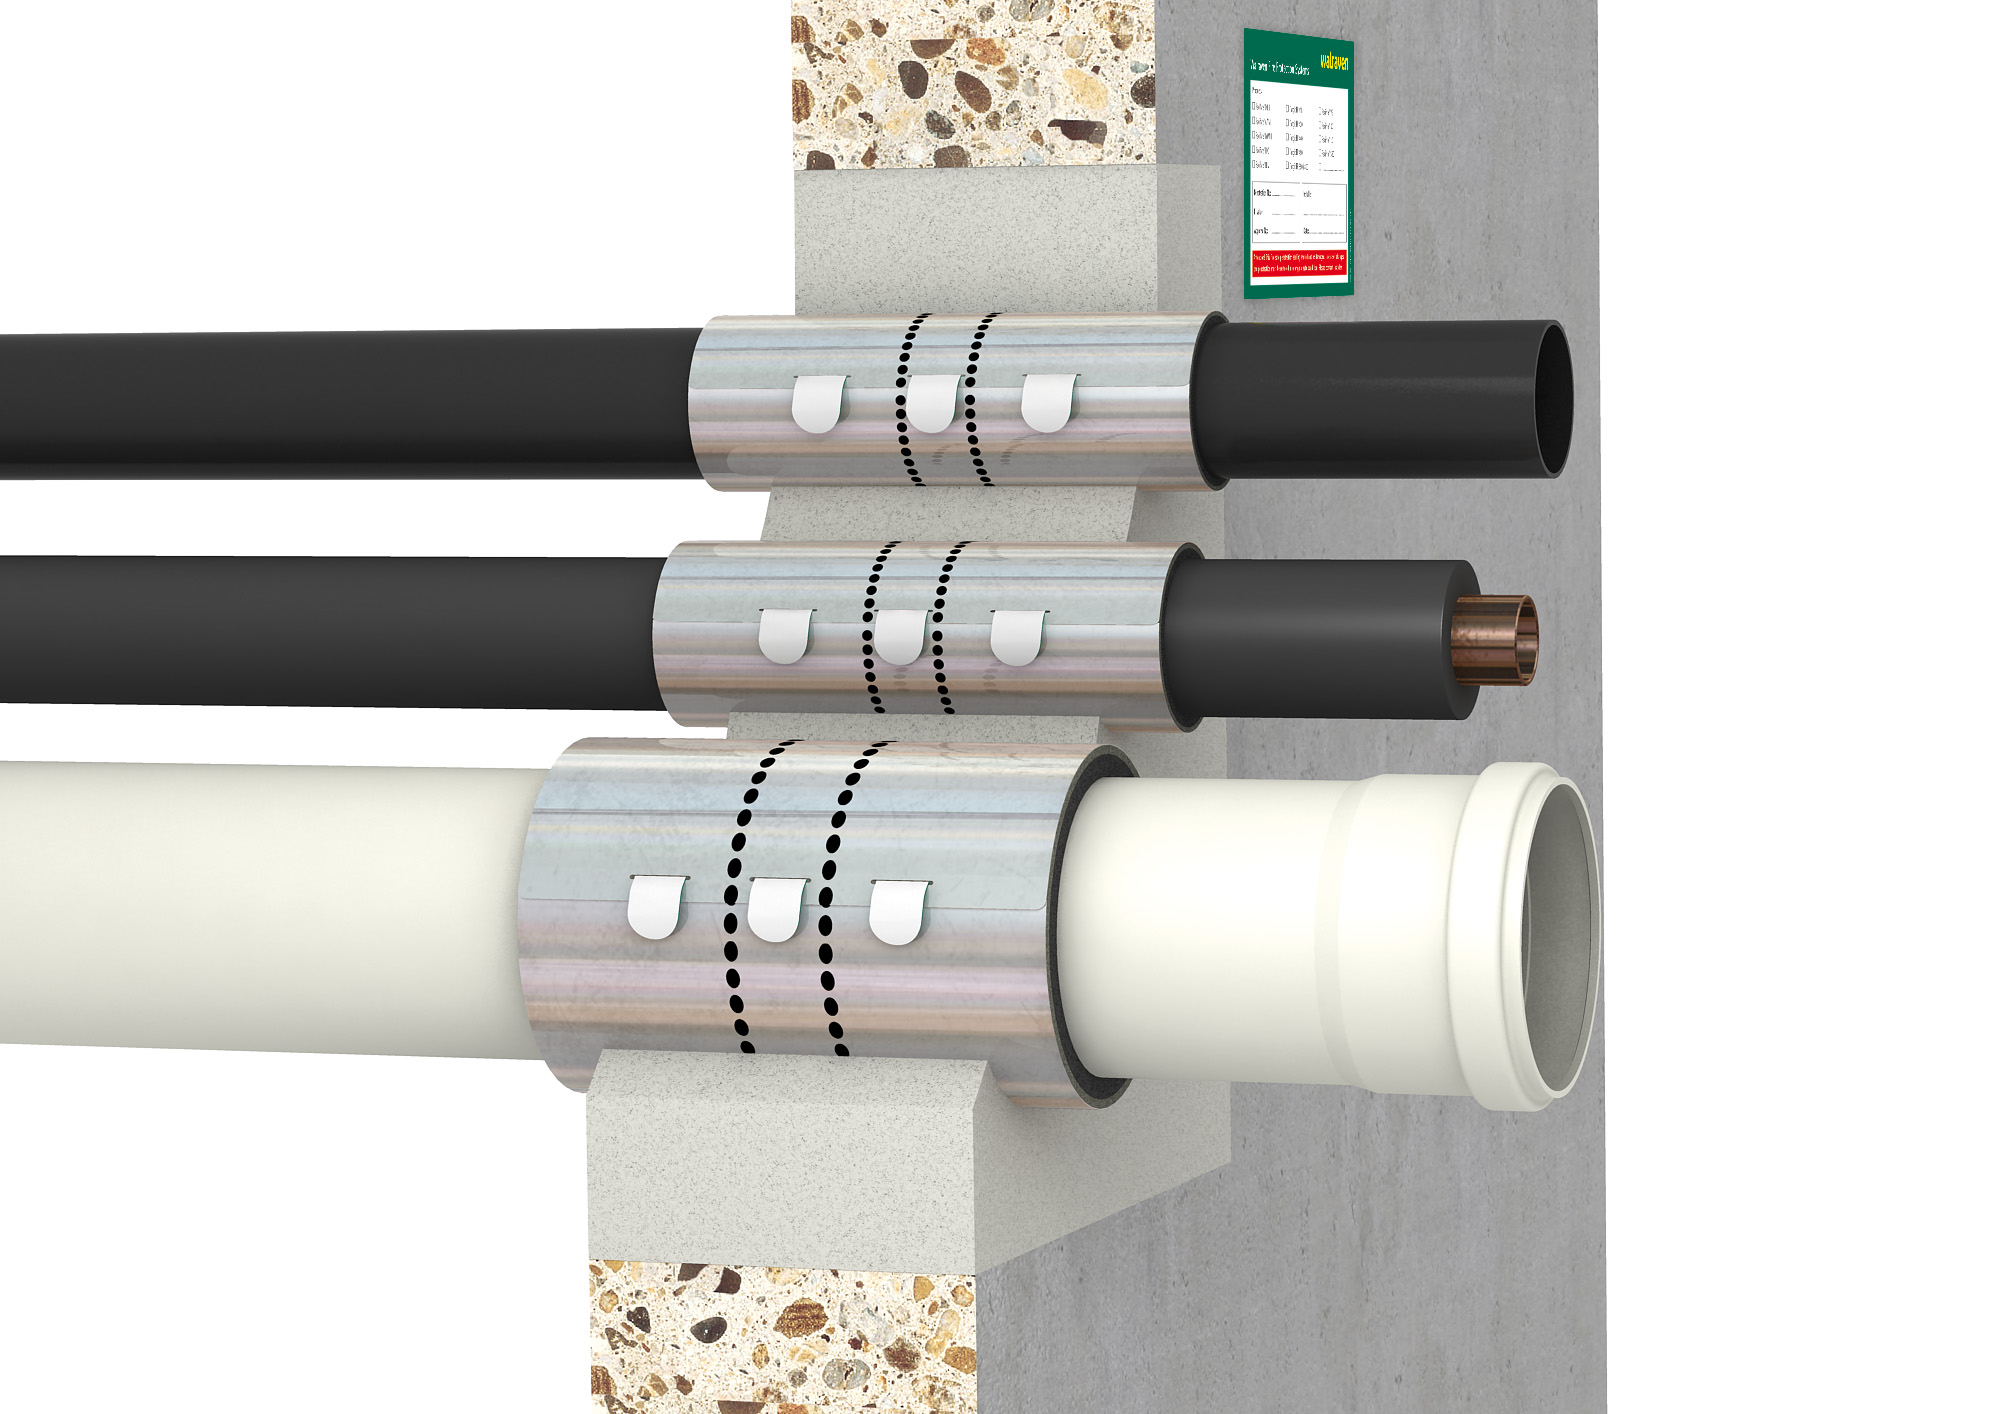 Easy to install fire stopping solution from Walraven